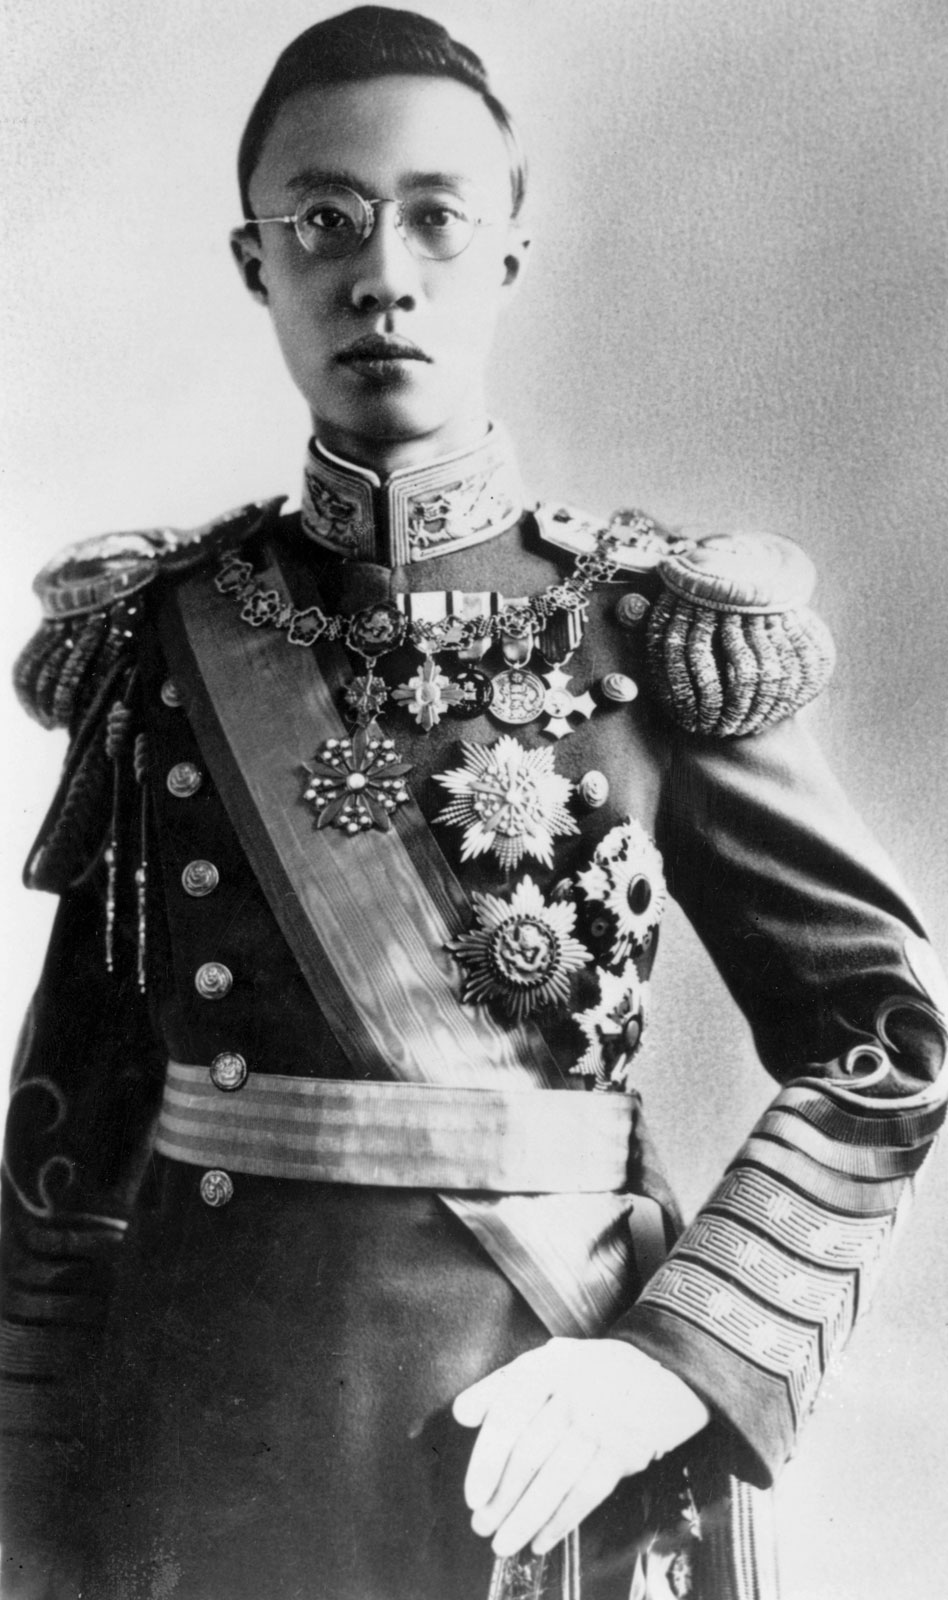 henry pu yi He was consigned to be a relic before his time had come henry pu yi started out life as an anachronism, a boy emperor of a fading dynasty he died as.